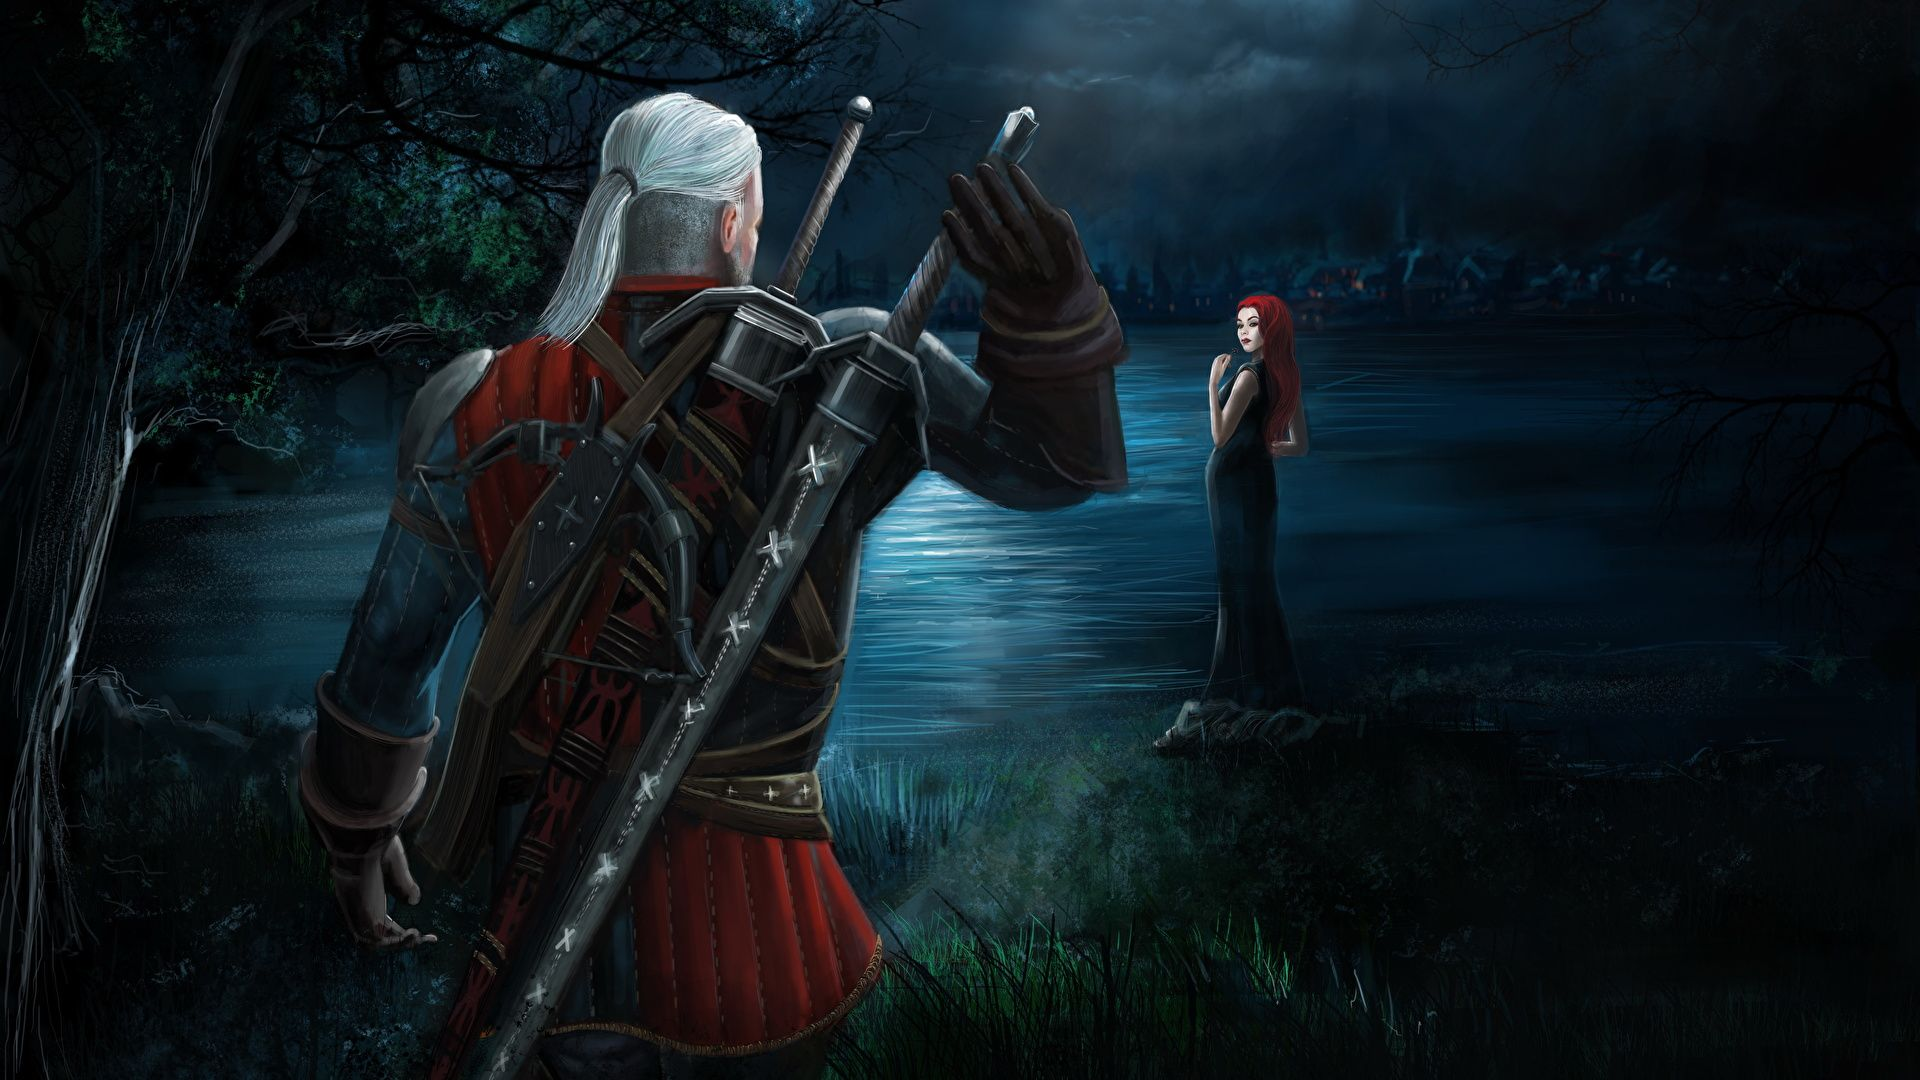 The Witcher 1920x1080 Wallpapers Top Free The Witcher 1920x1080